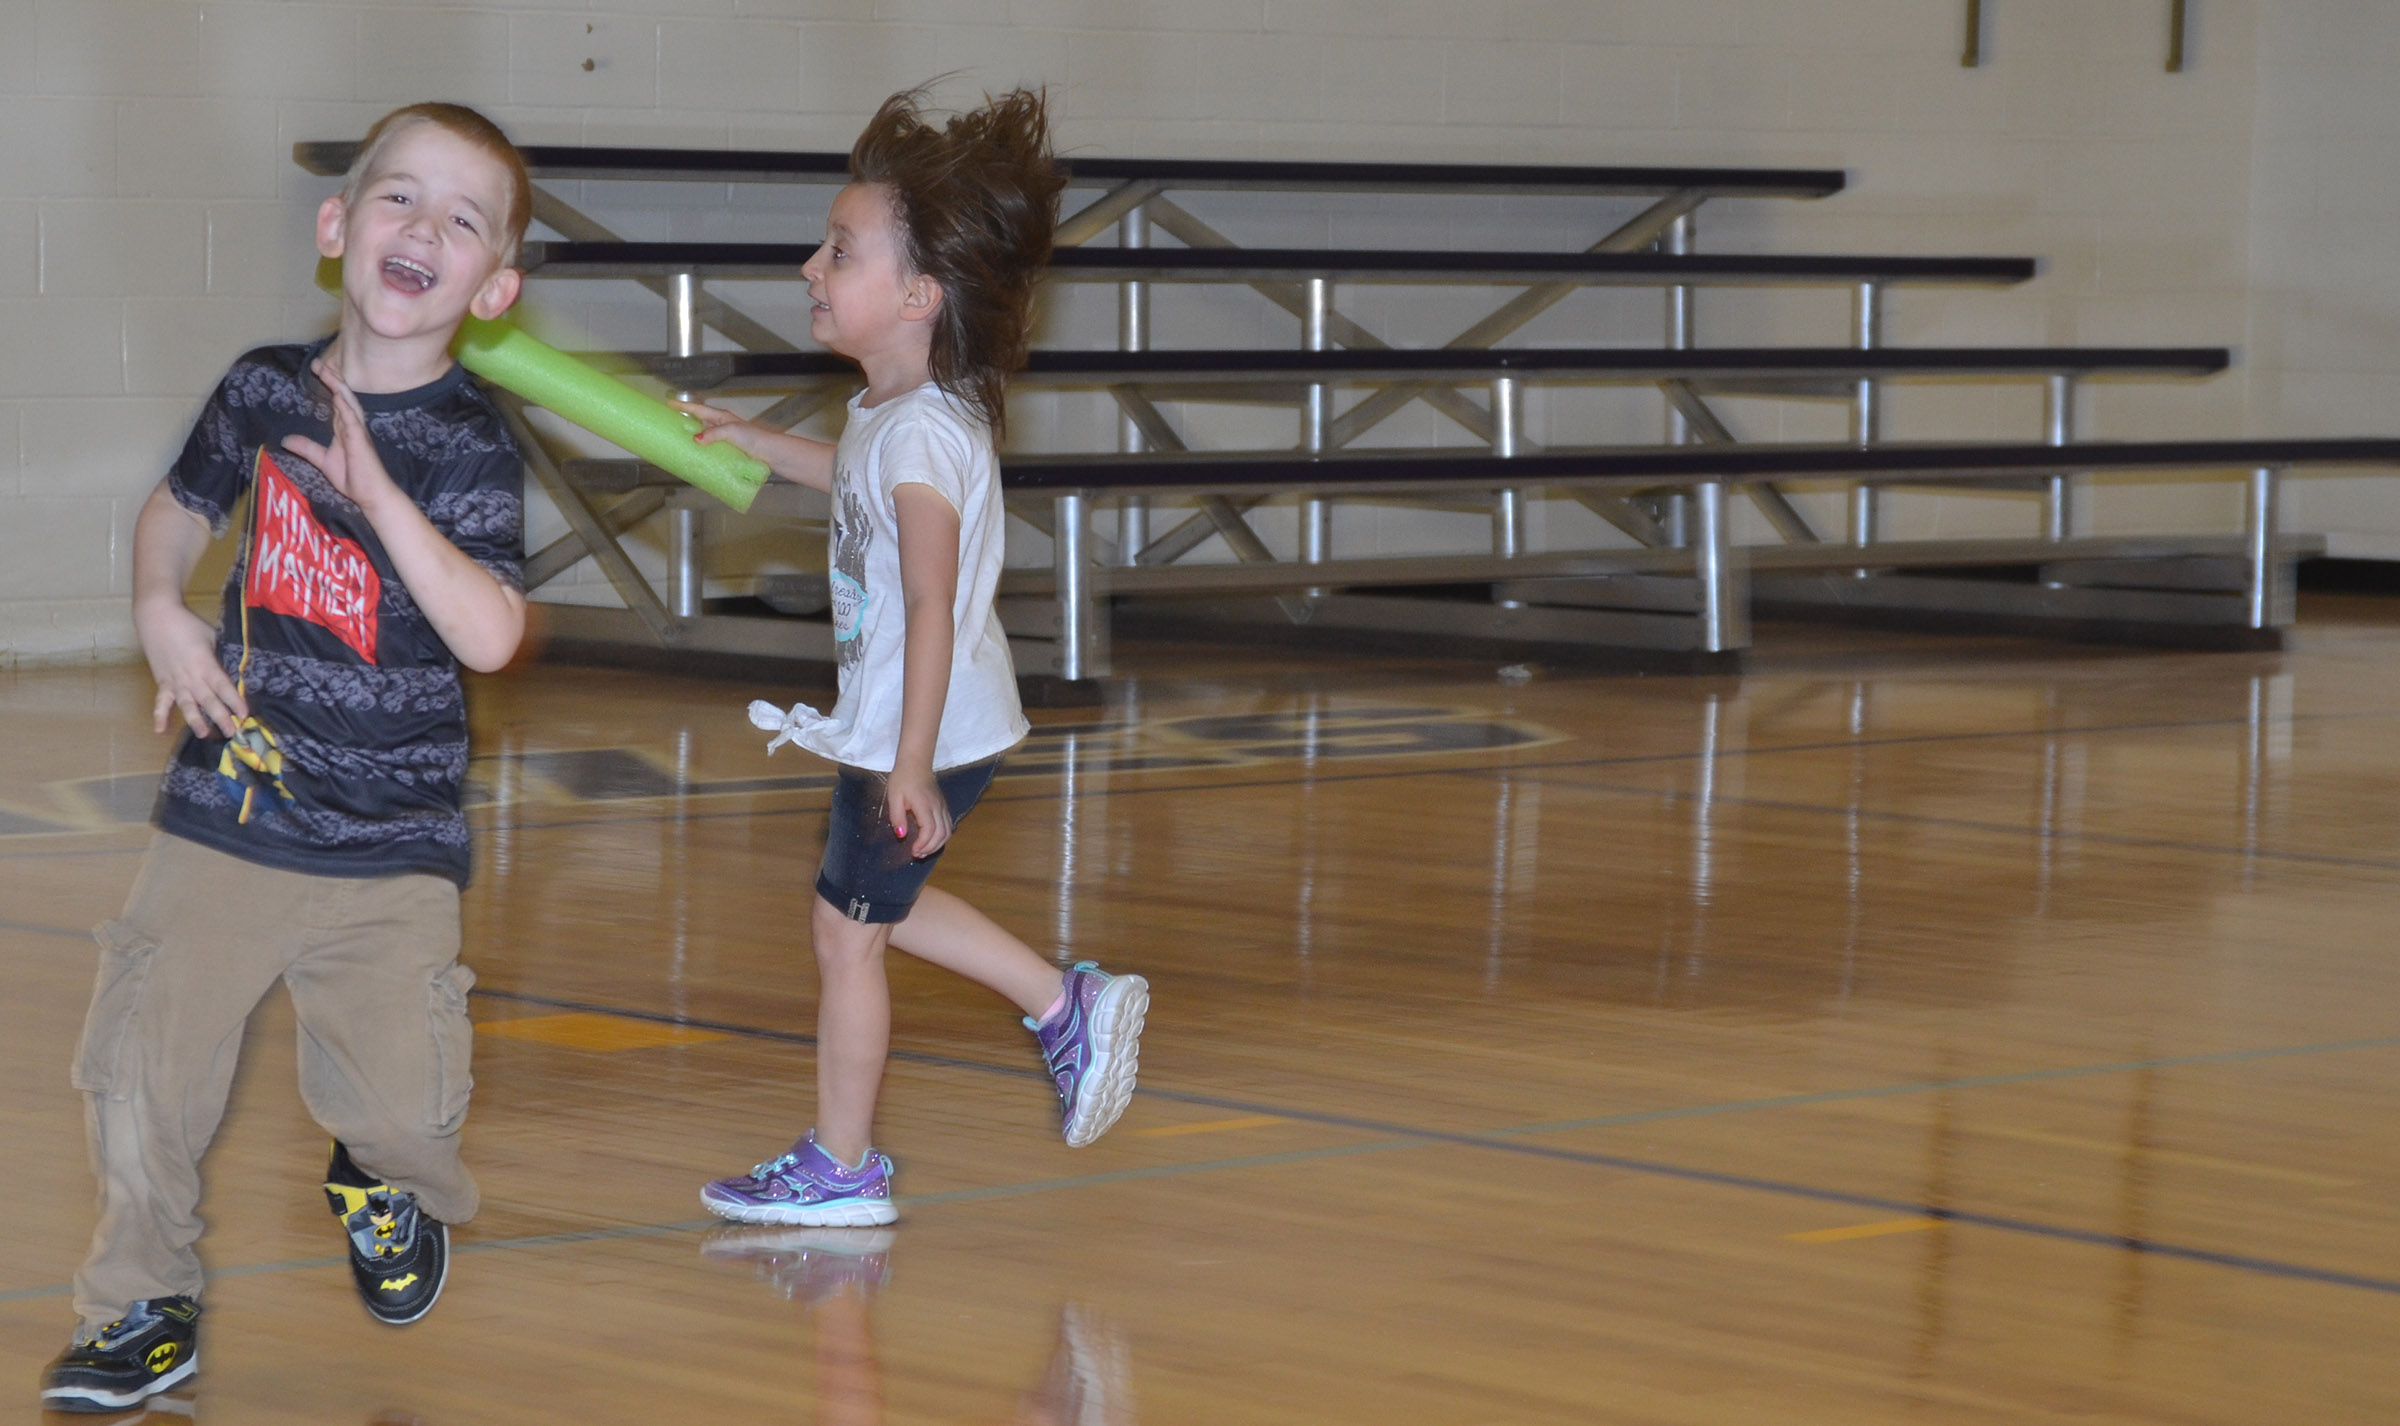 CES kindergartener Mason Edwards runs as he plays noodle tag.